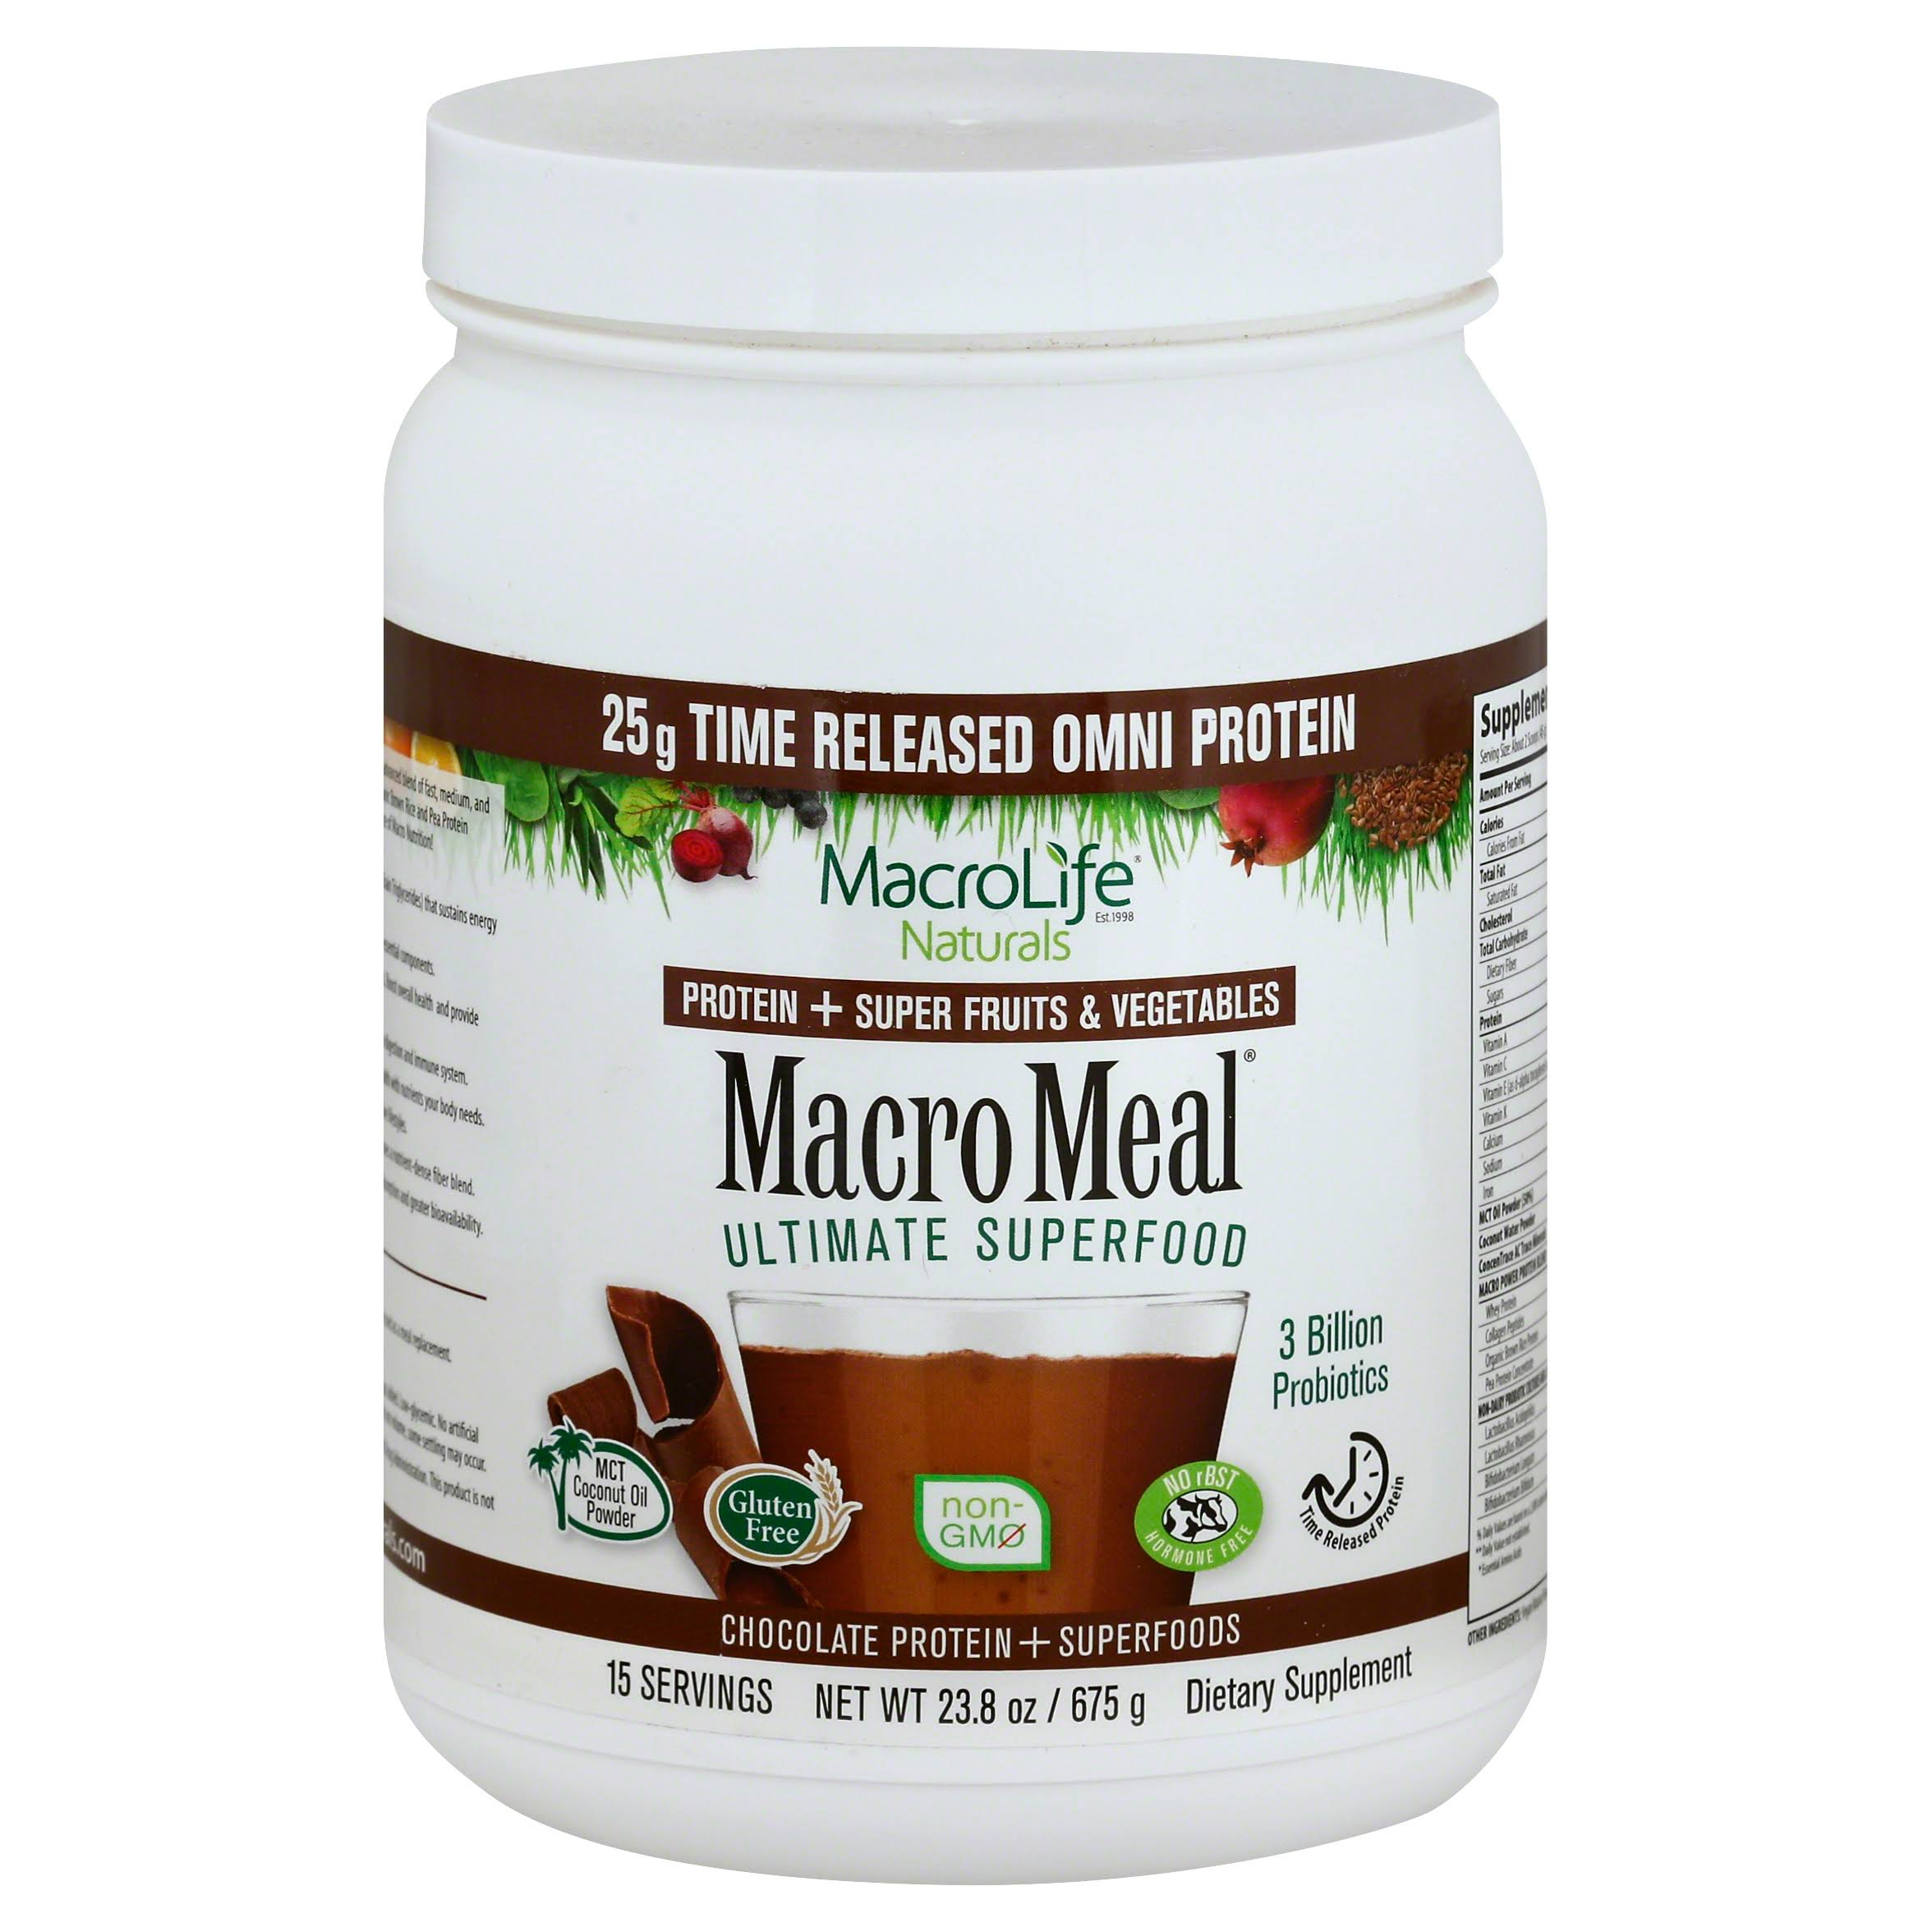 Macrolife Naturals Macro Meal Superfood - Chocolate